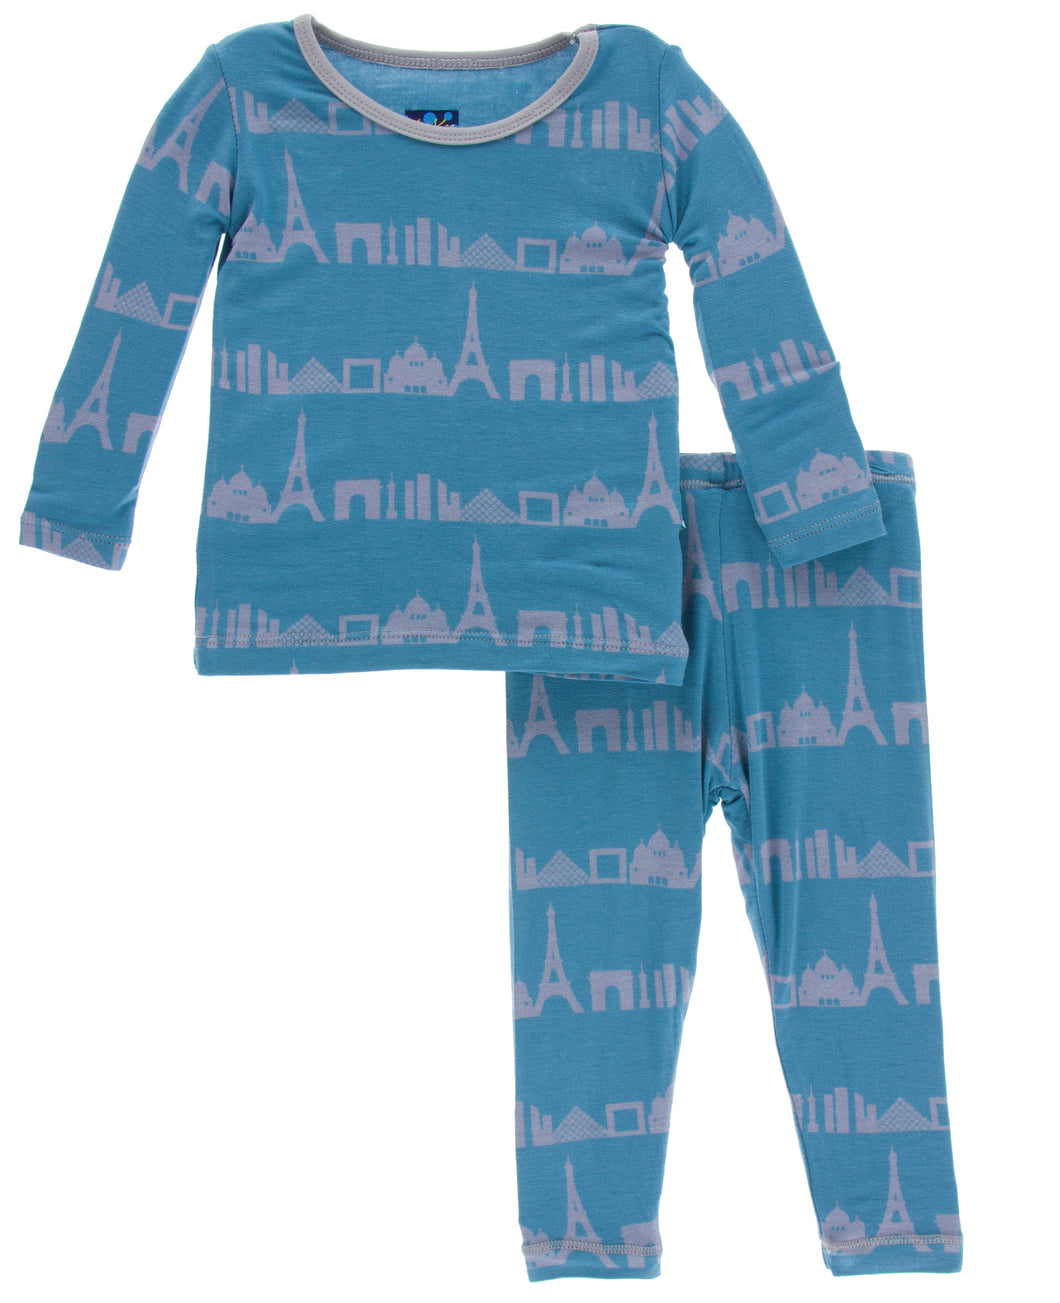 KicKee Pants Print Long Sleeve Pajama Set - Parisian Skyline